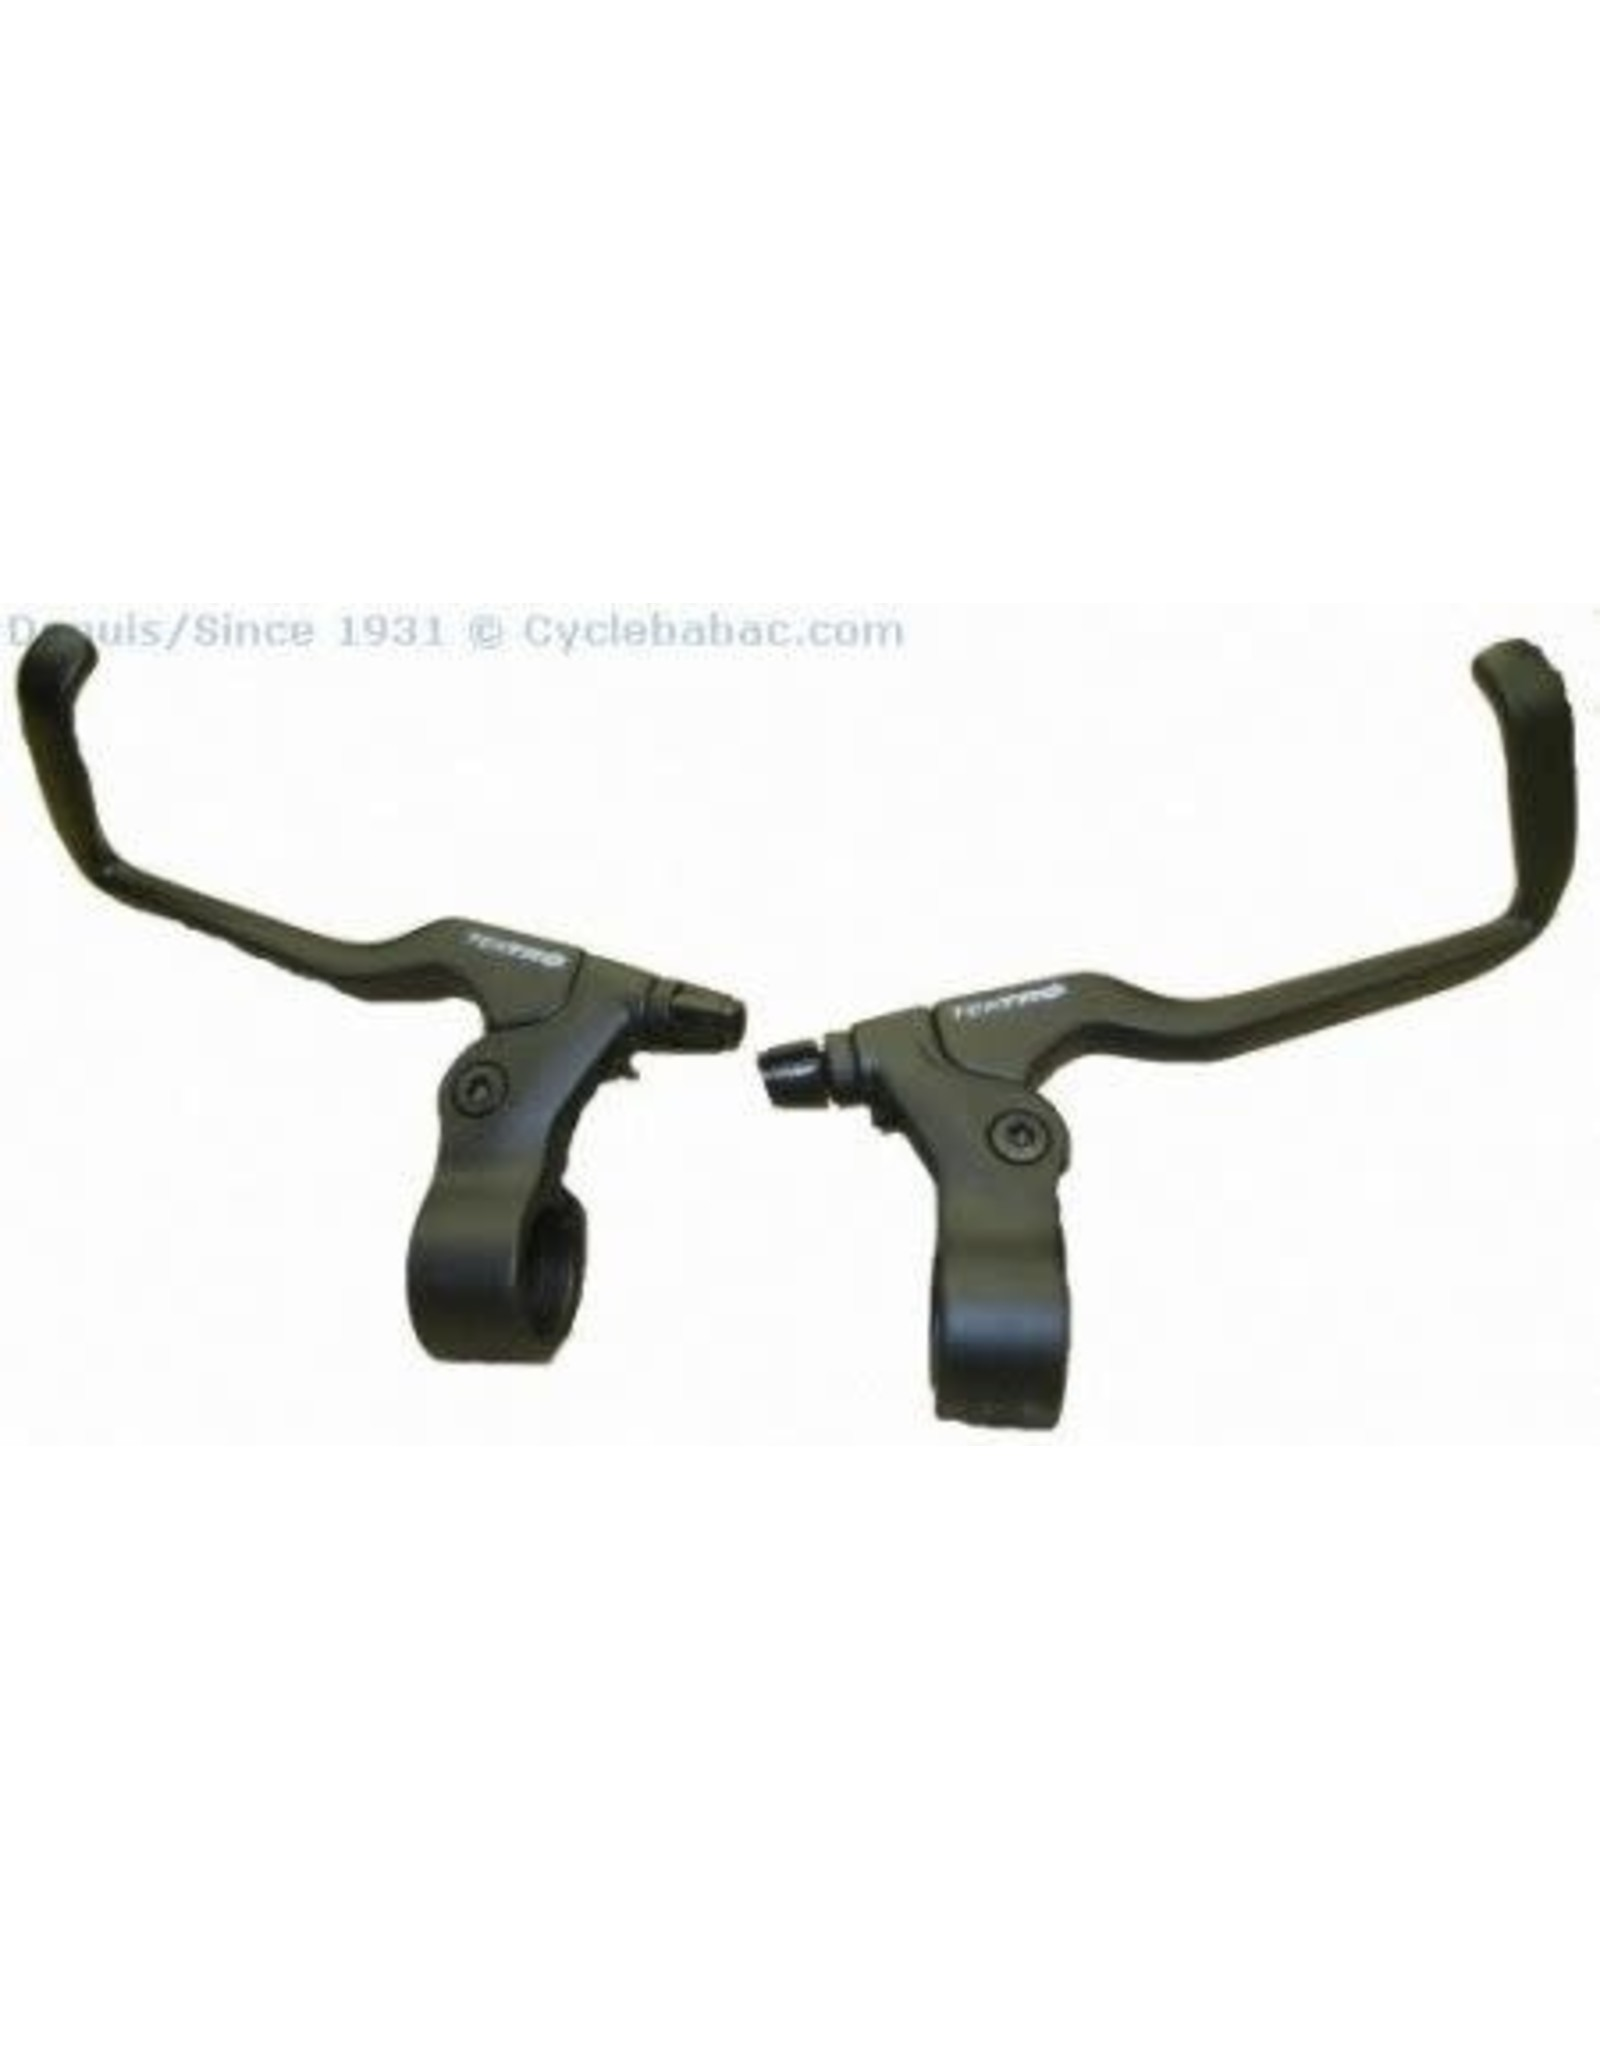 Tektro Brake, Levers, Pair - Tektro, Flat Bar w/ Bullhorn Reach Ext., Short Pull, All Black